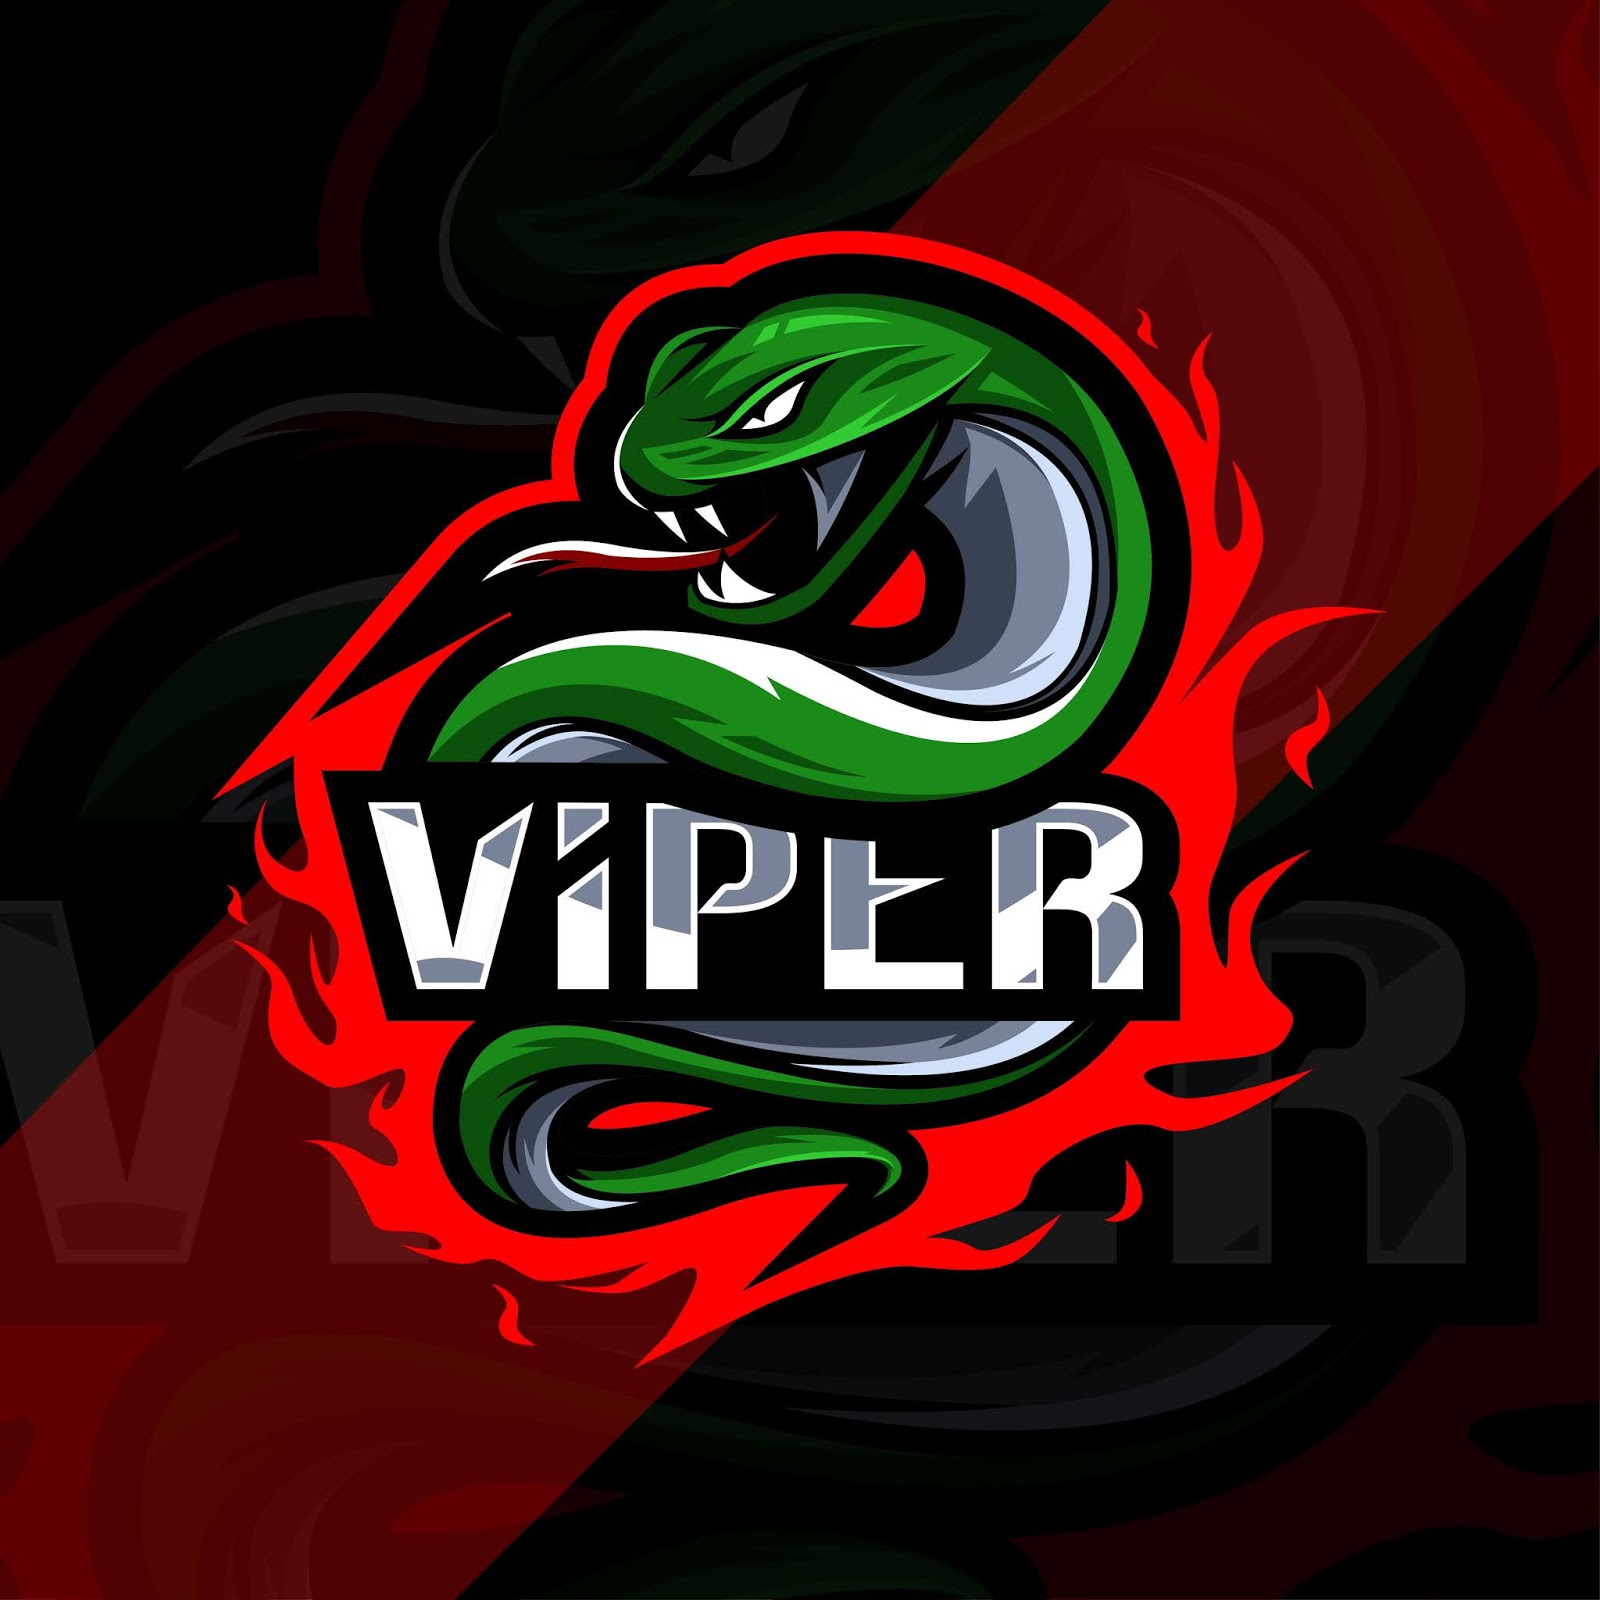 Viper Mascot Logo Esport Style Free Download Vector CDR, AI, EPS and PNG Formats